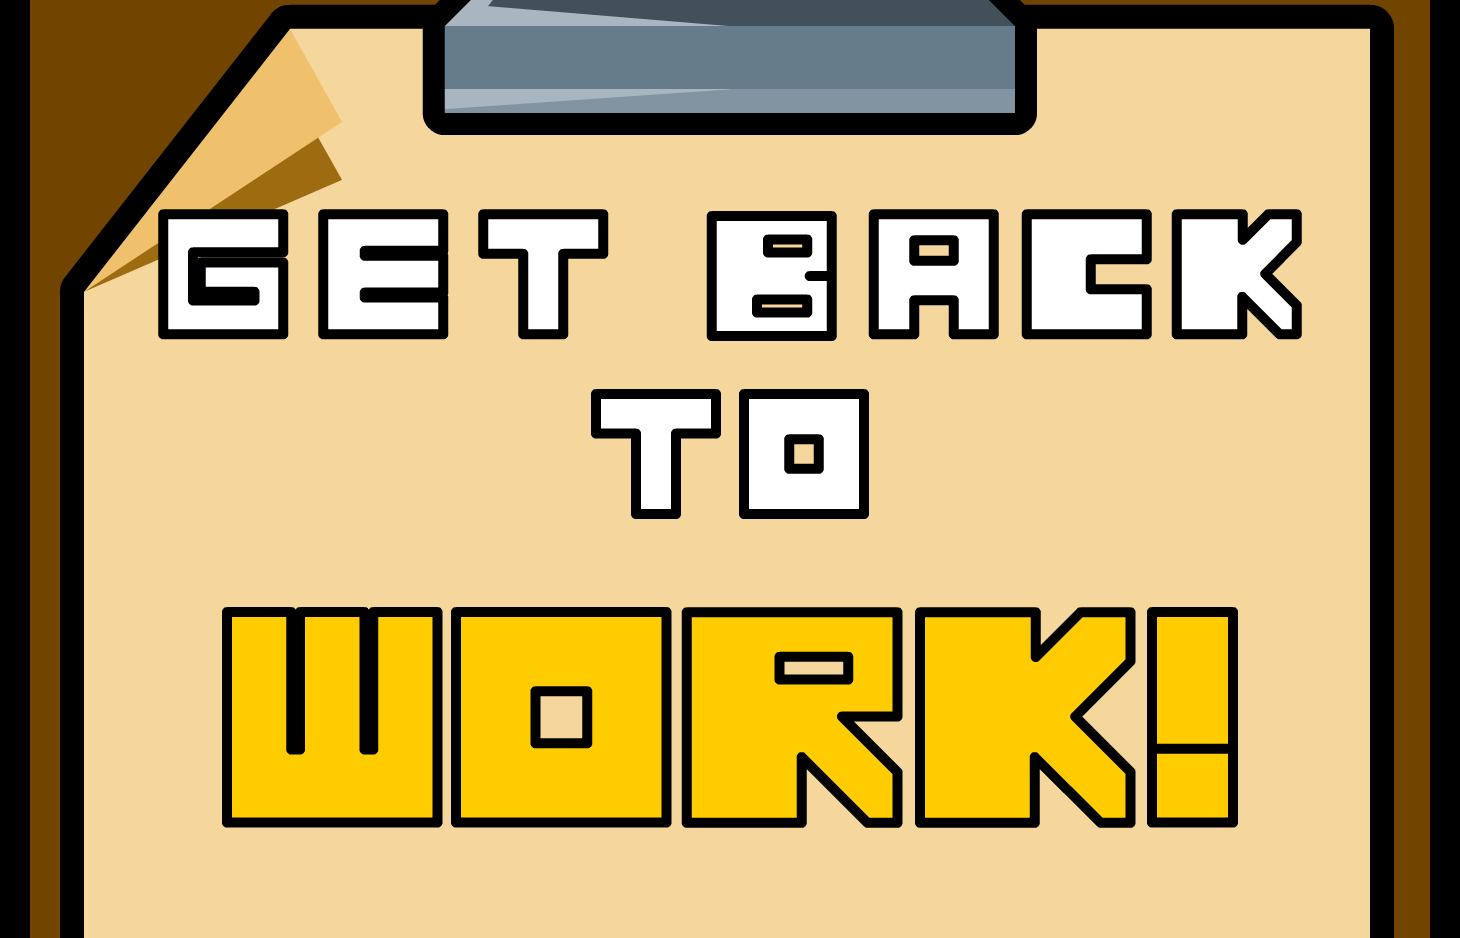 Get Back To Work! game